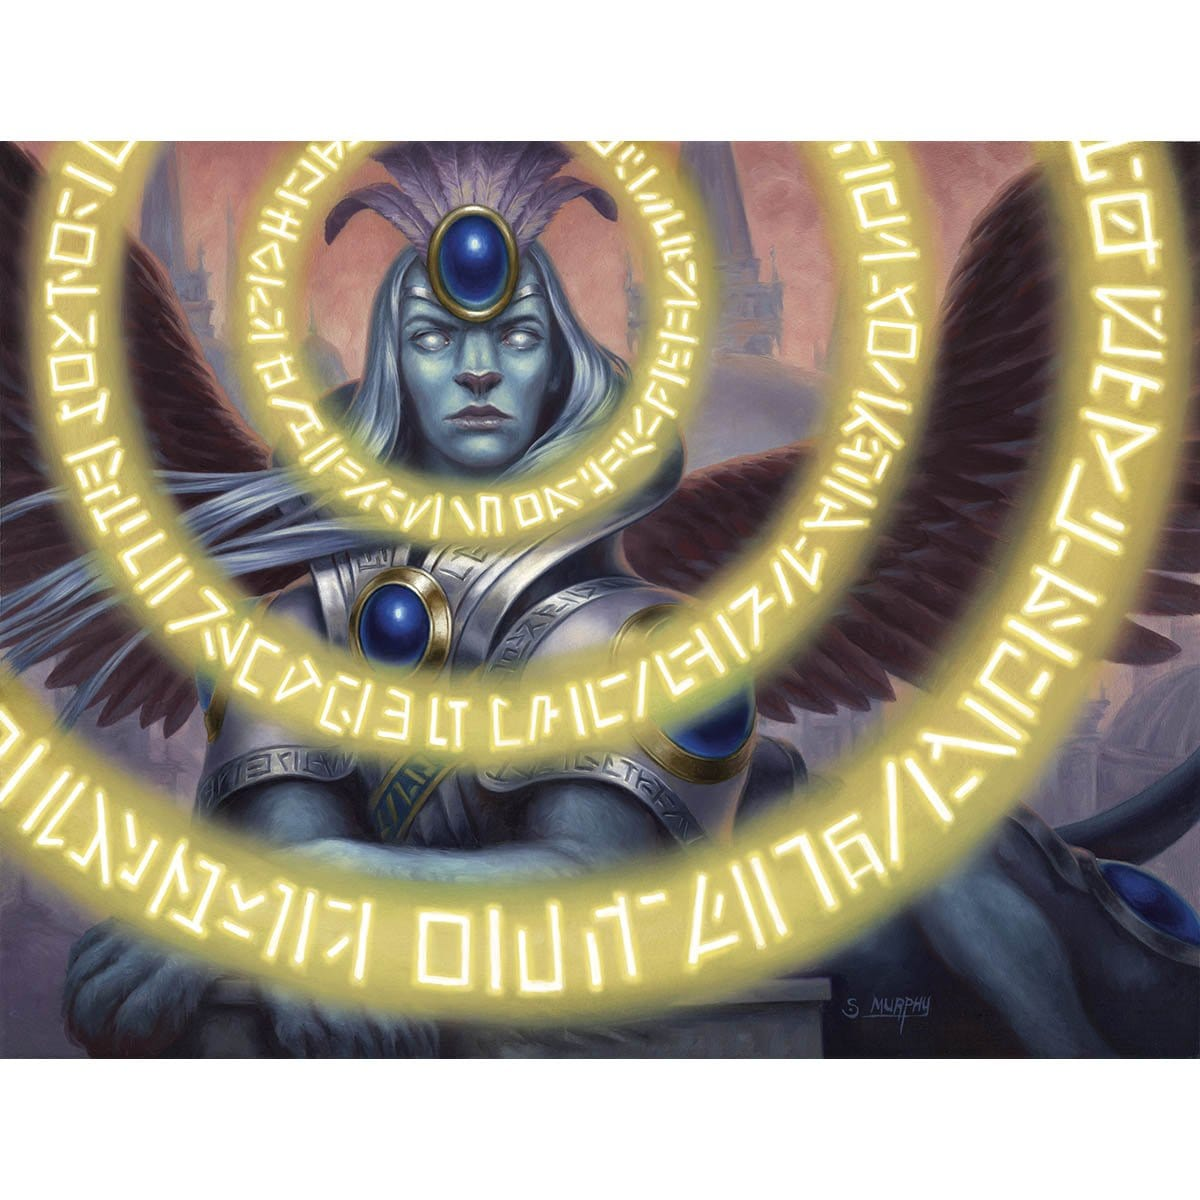 Sphinx's Insight Print - Print - Original Magic Art - Accessories for Magic the Gathering and other card games